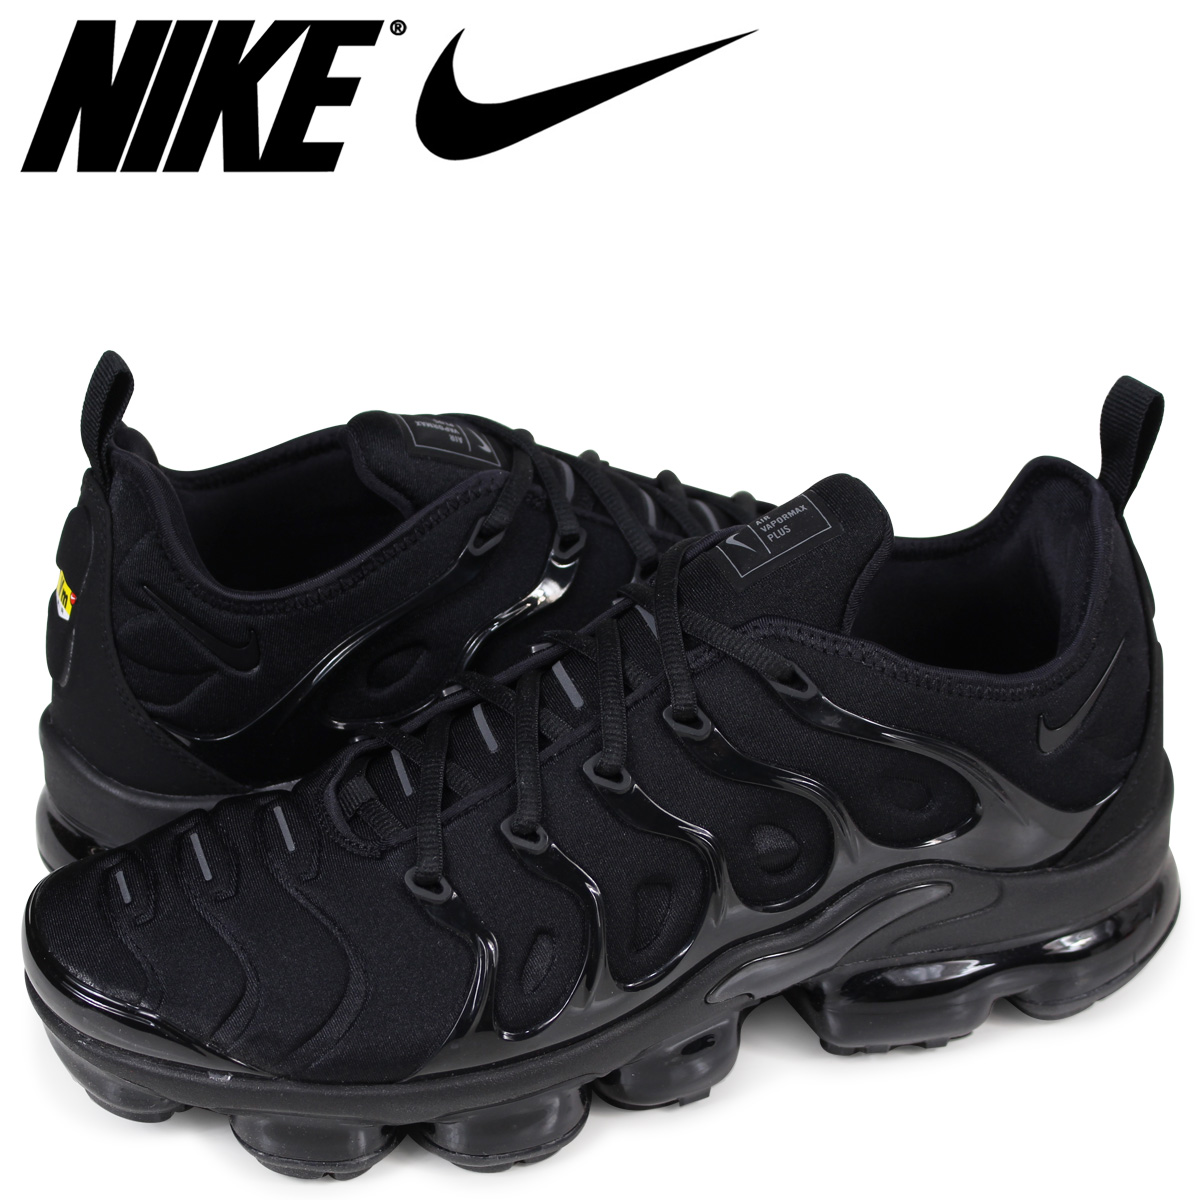 best authentic 3040f 0687e NIKE AIR VAPORMAX PLUS Nike air vapor max plus sneakers men black  924,453-004